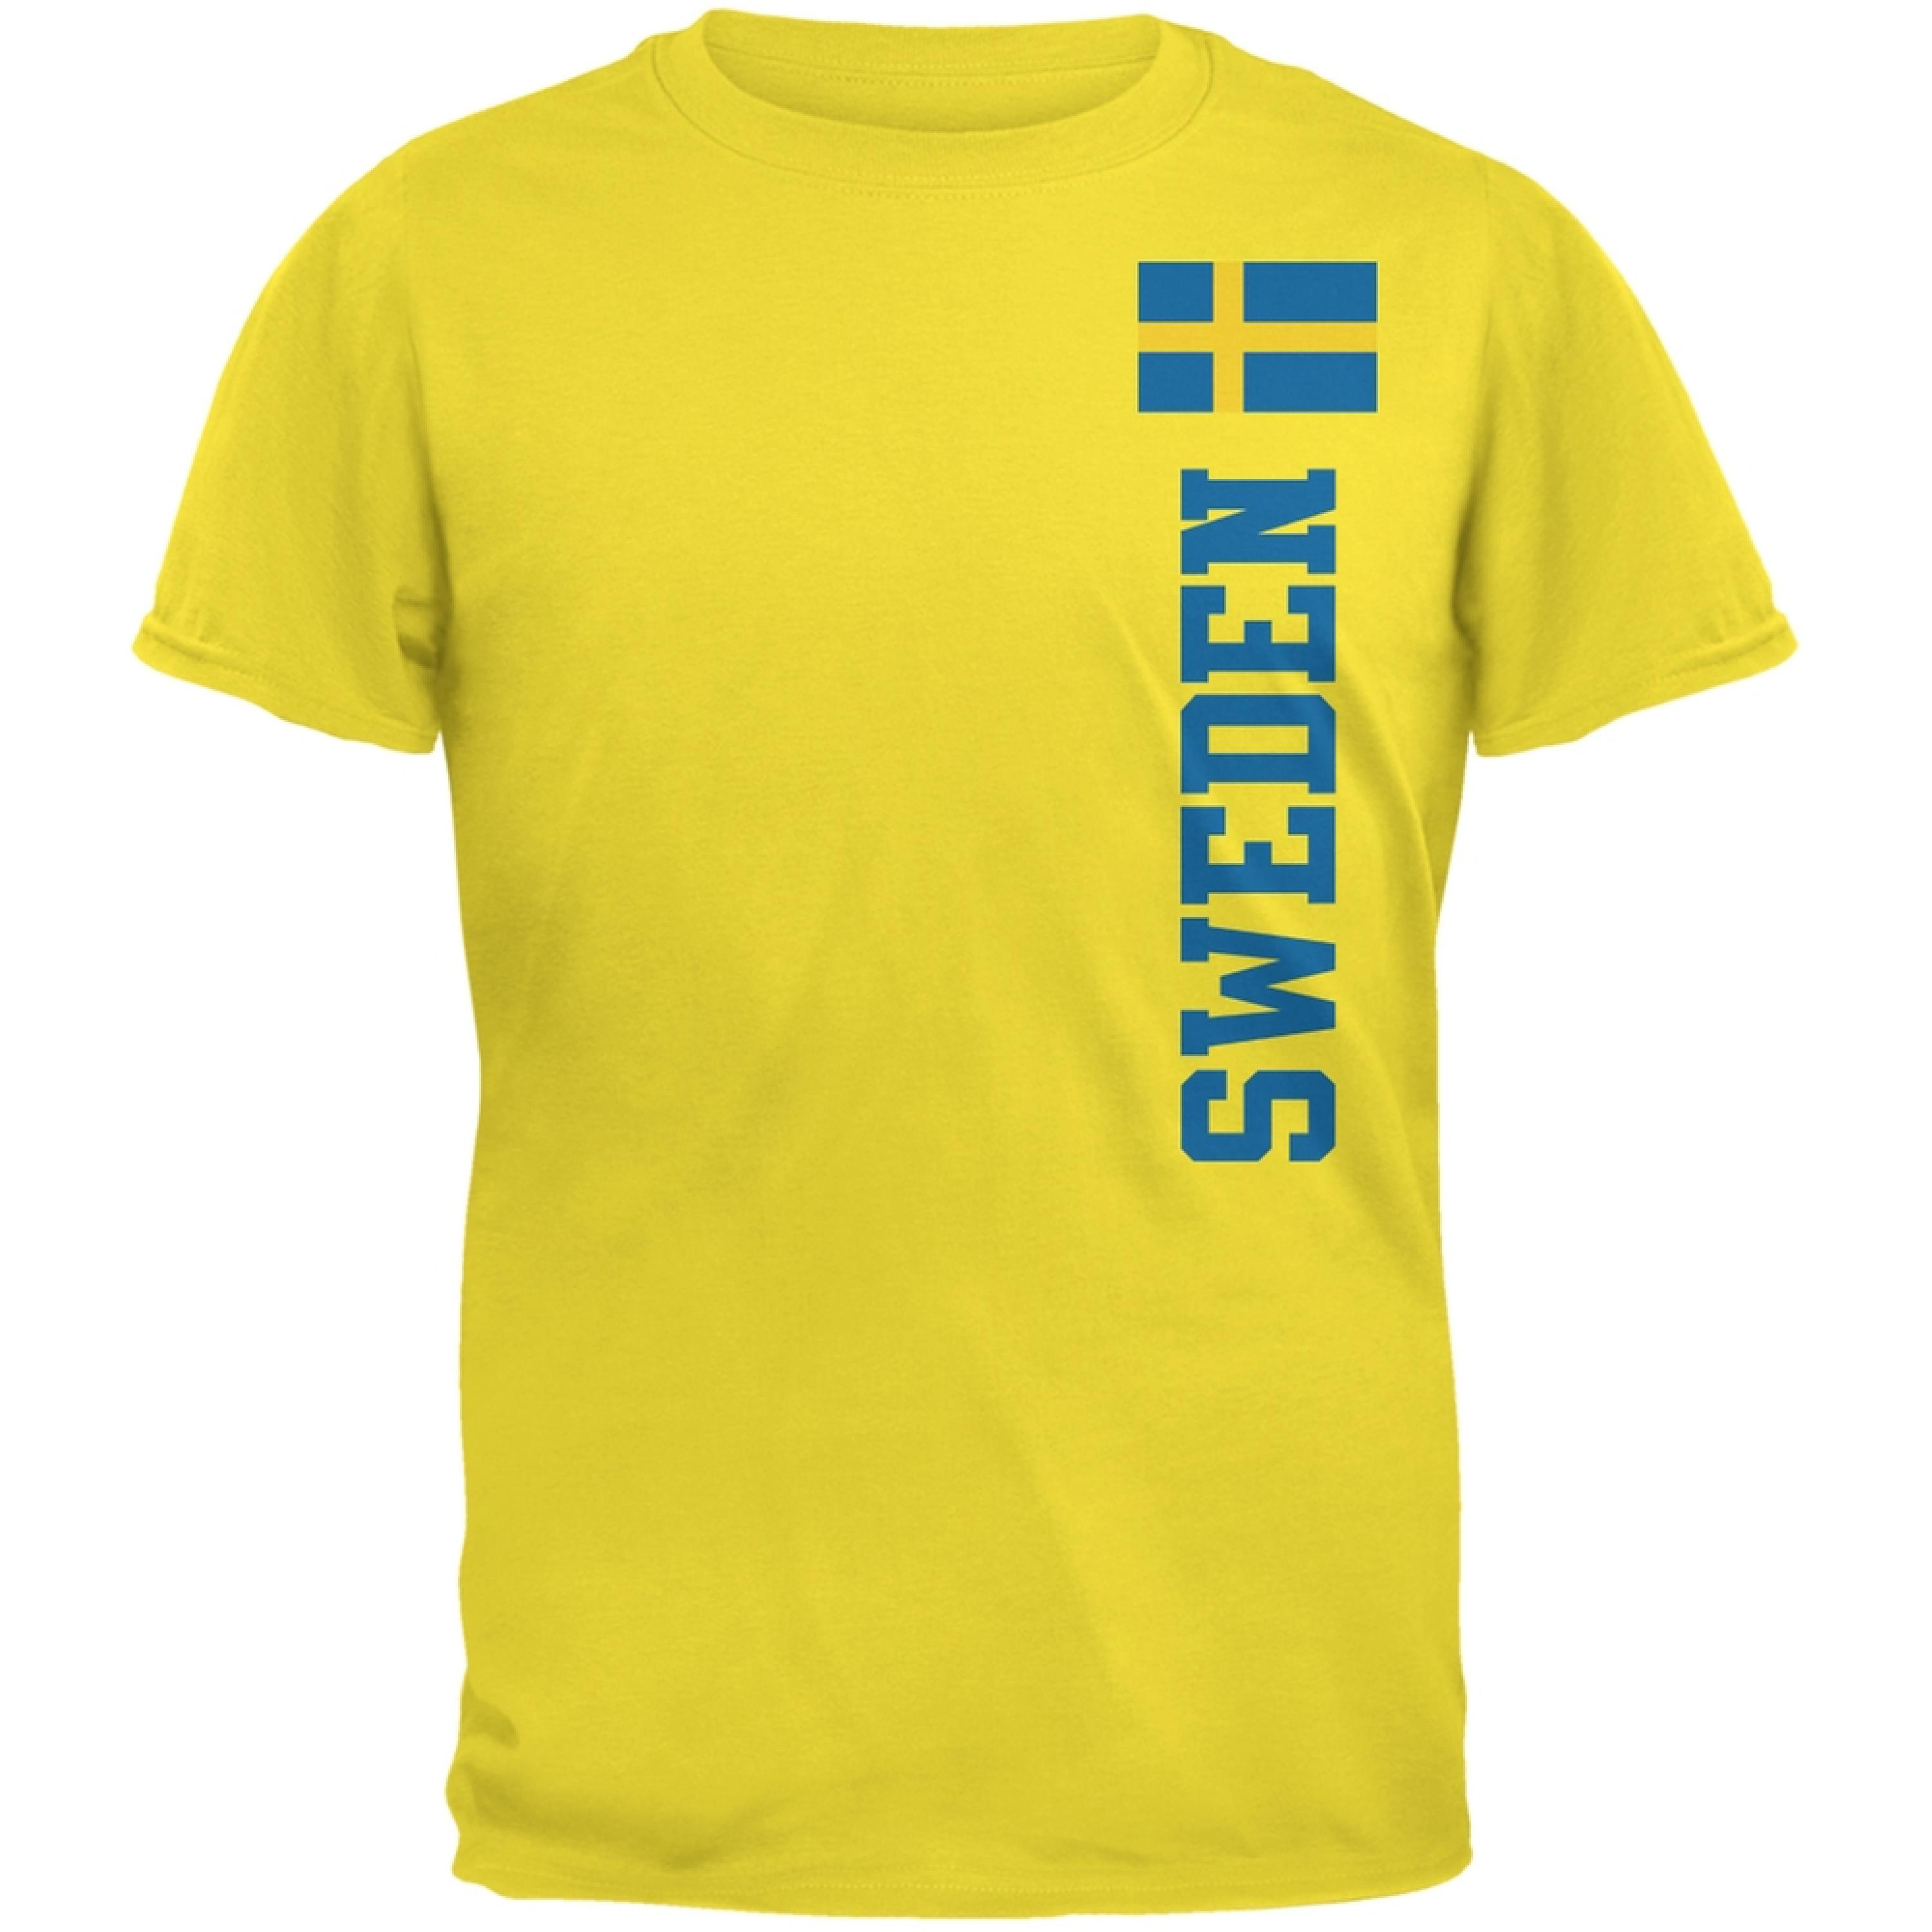 World Cup Sweden Yellow Adult T-Shirt